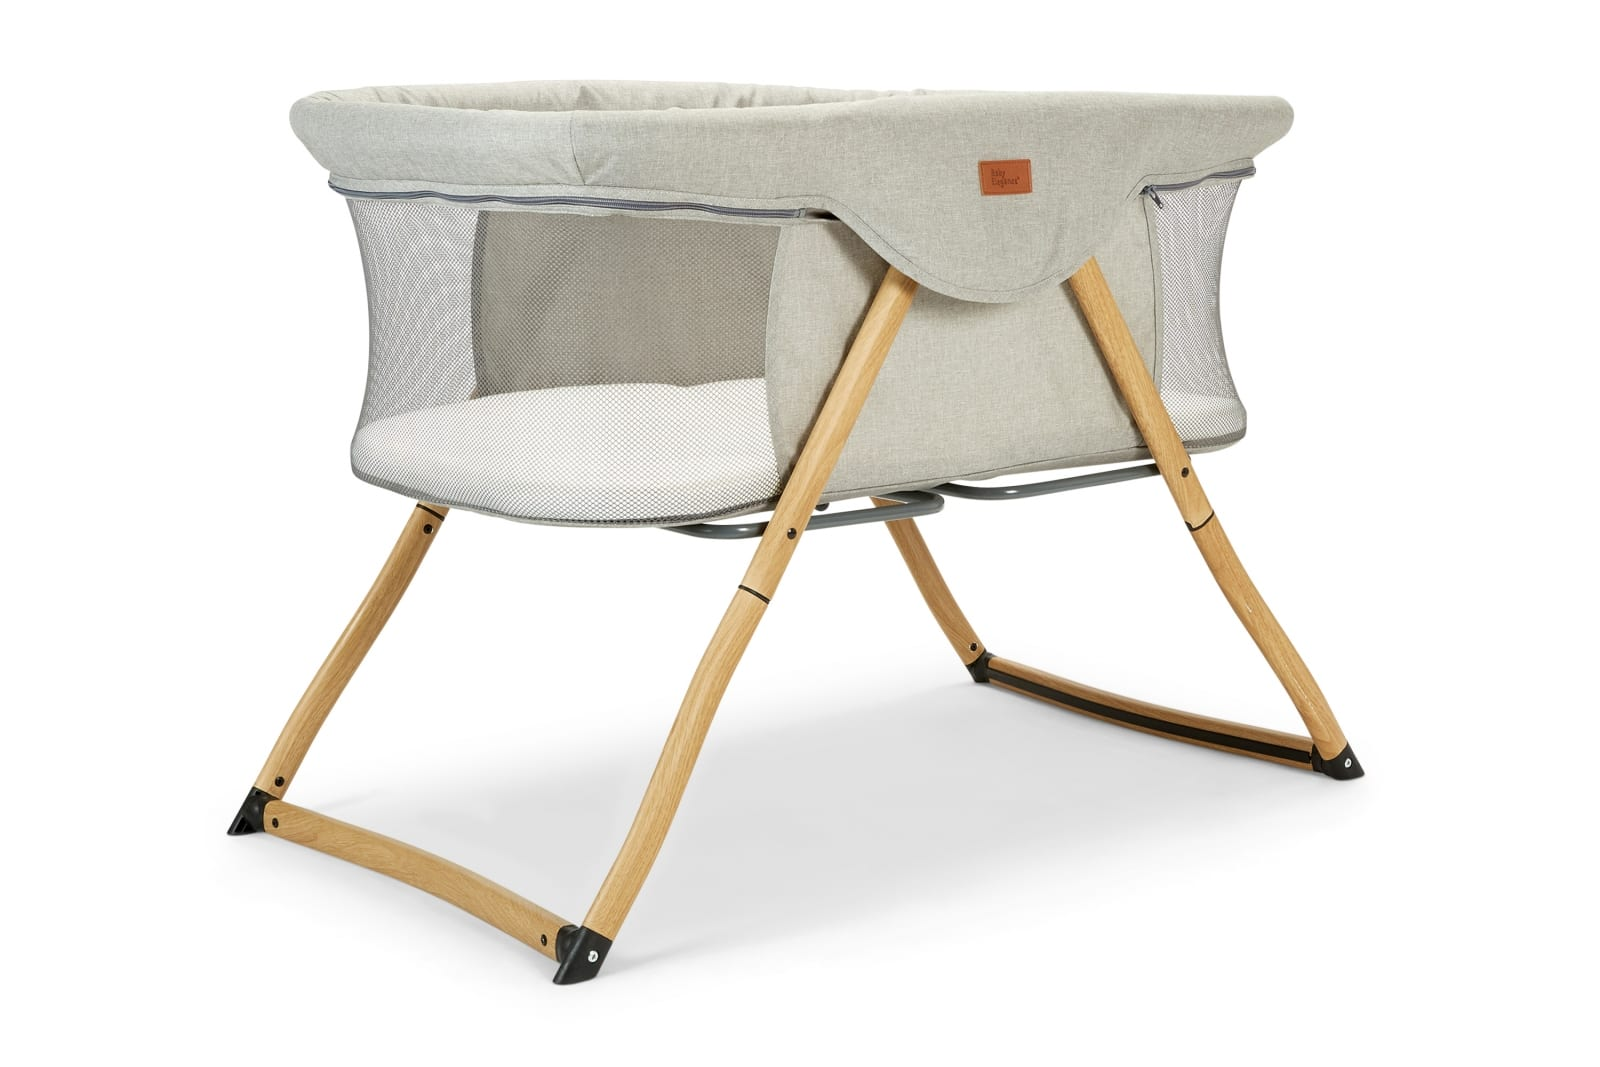 Kangu Foldable Crib – Wood Look product image